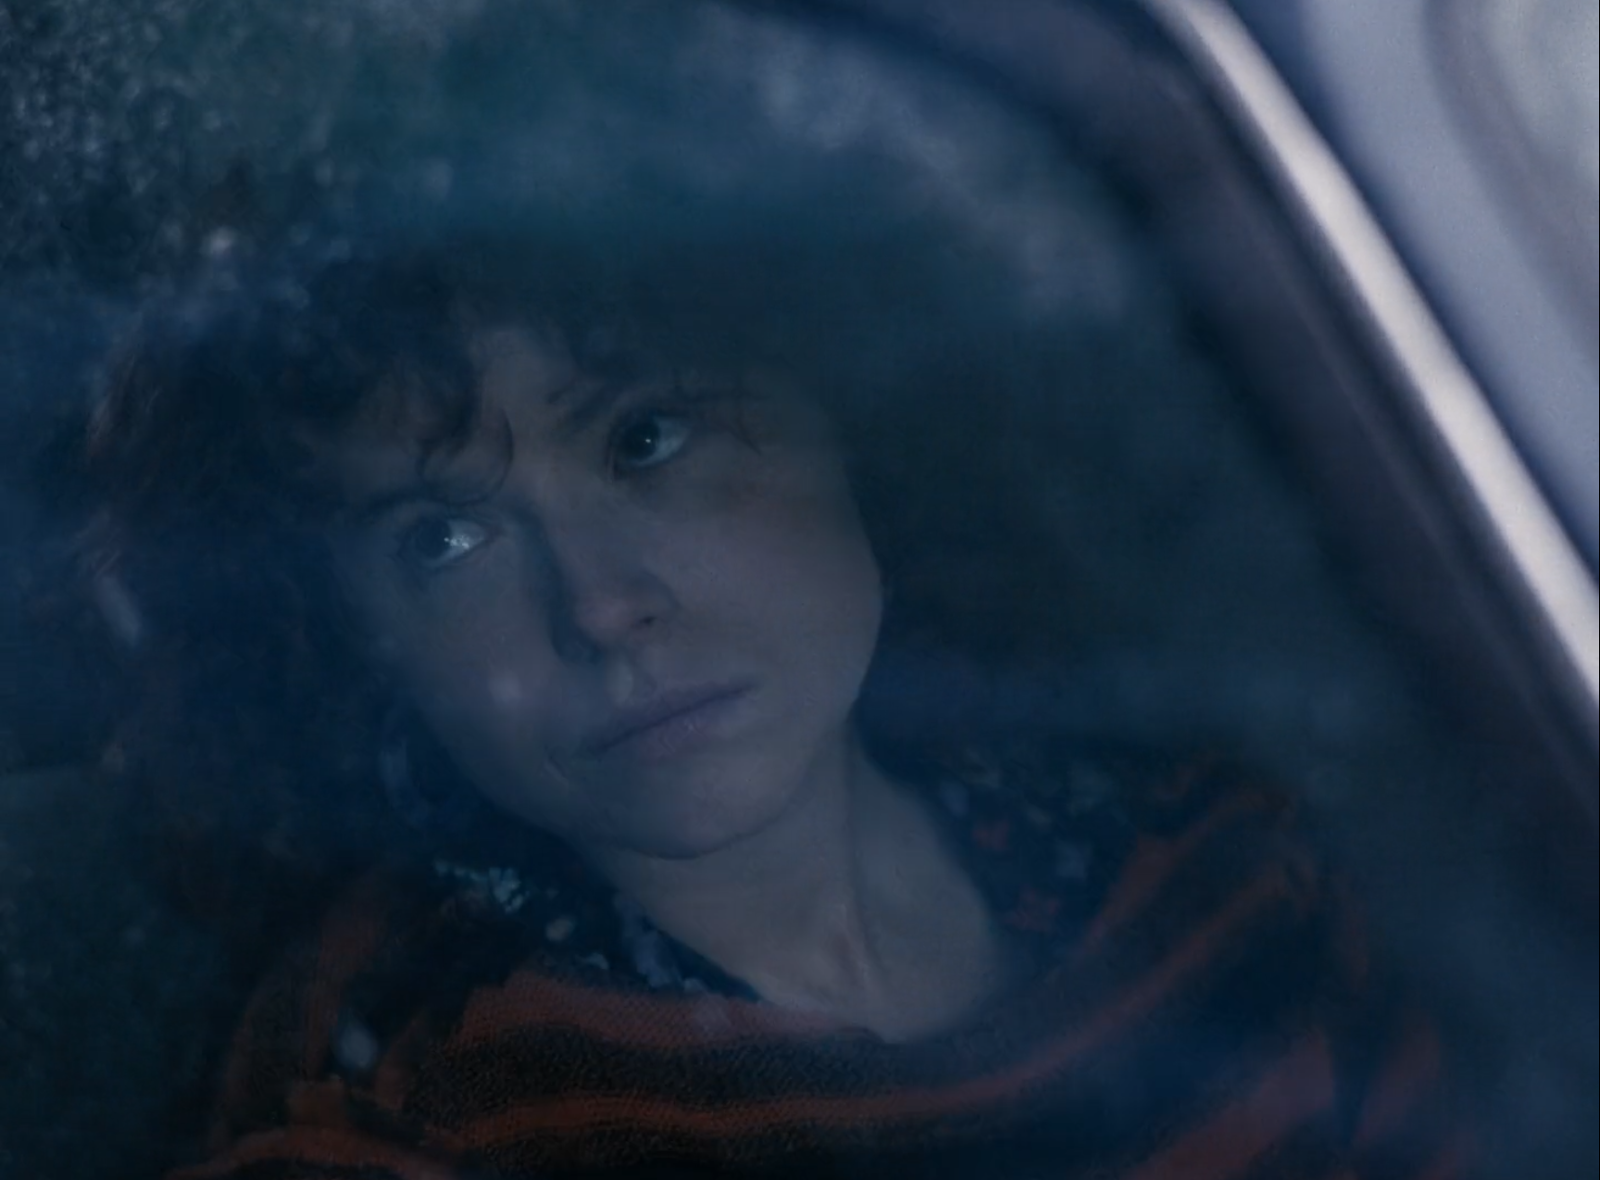 Jessie Buckley in I'm Thinking of Ending Things (2020). Lucy, a young white woman with curly ginger hair and wearing a black floral dress, is filmed looking out from behind a car window, glazed over with blue shadow and slightly out of focus. She looks upwards, morose.